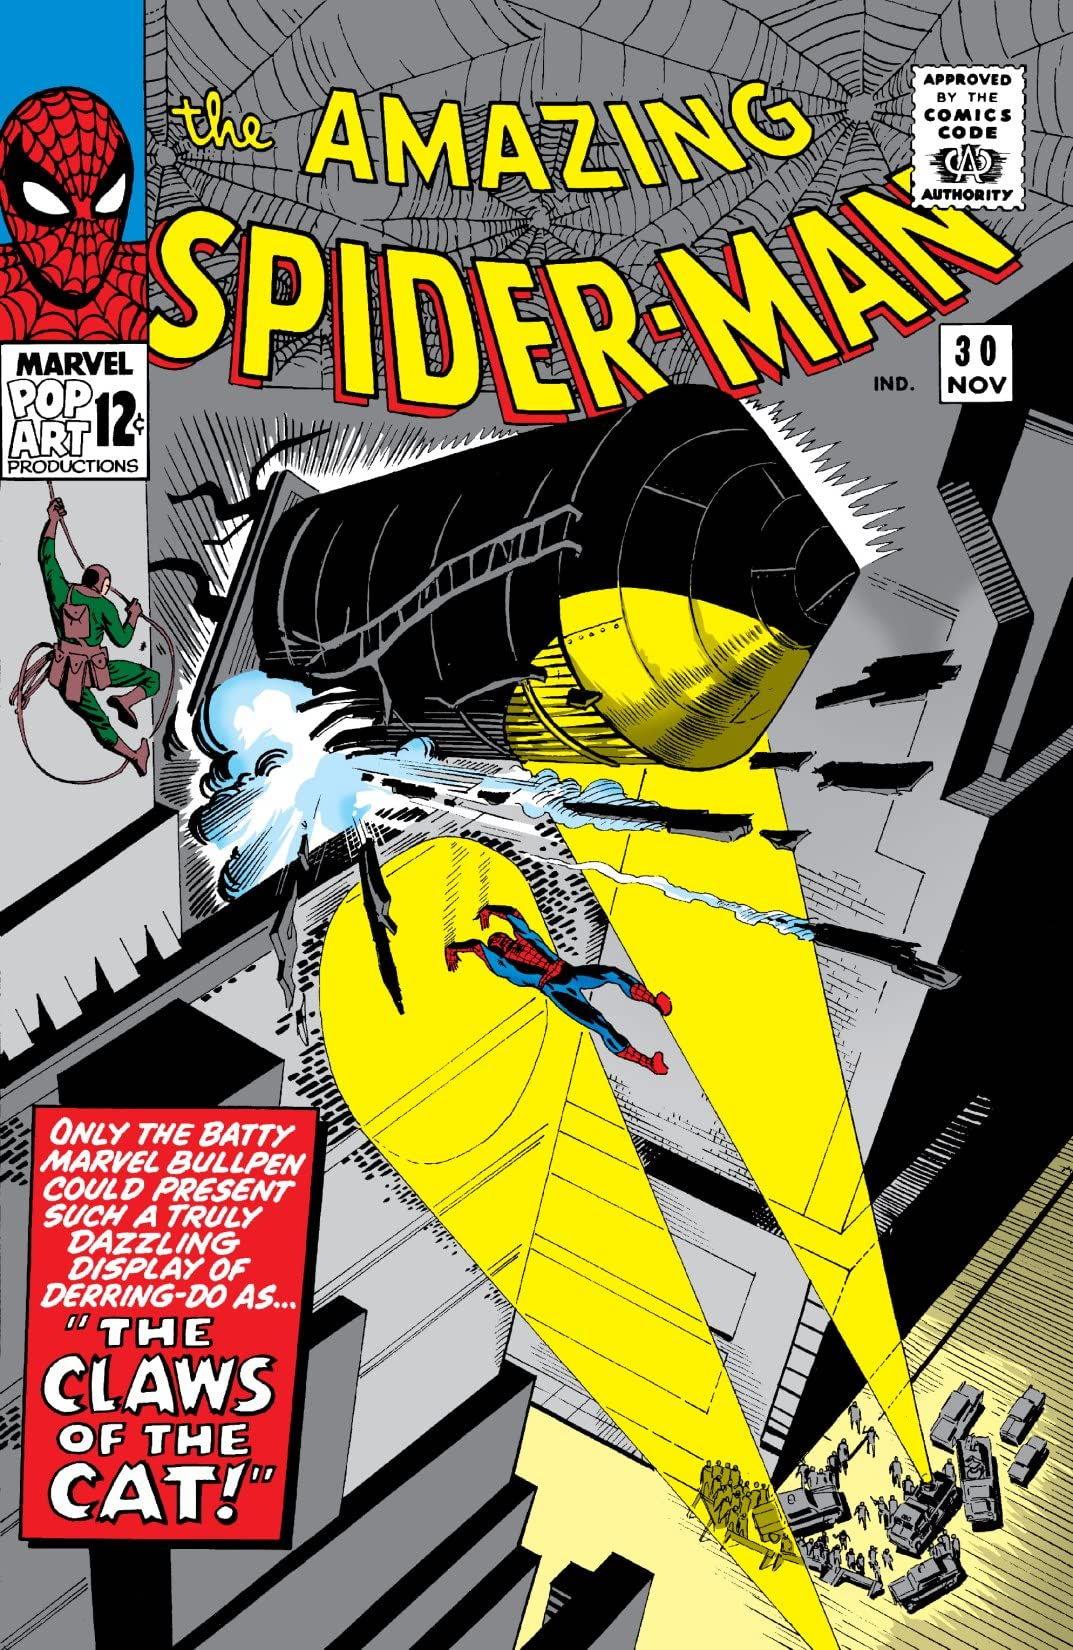 Amazing Spider-Man #030